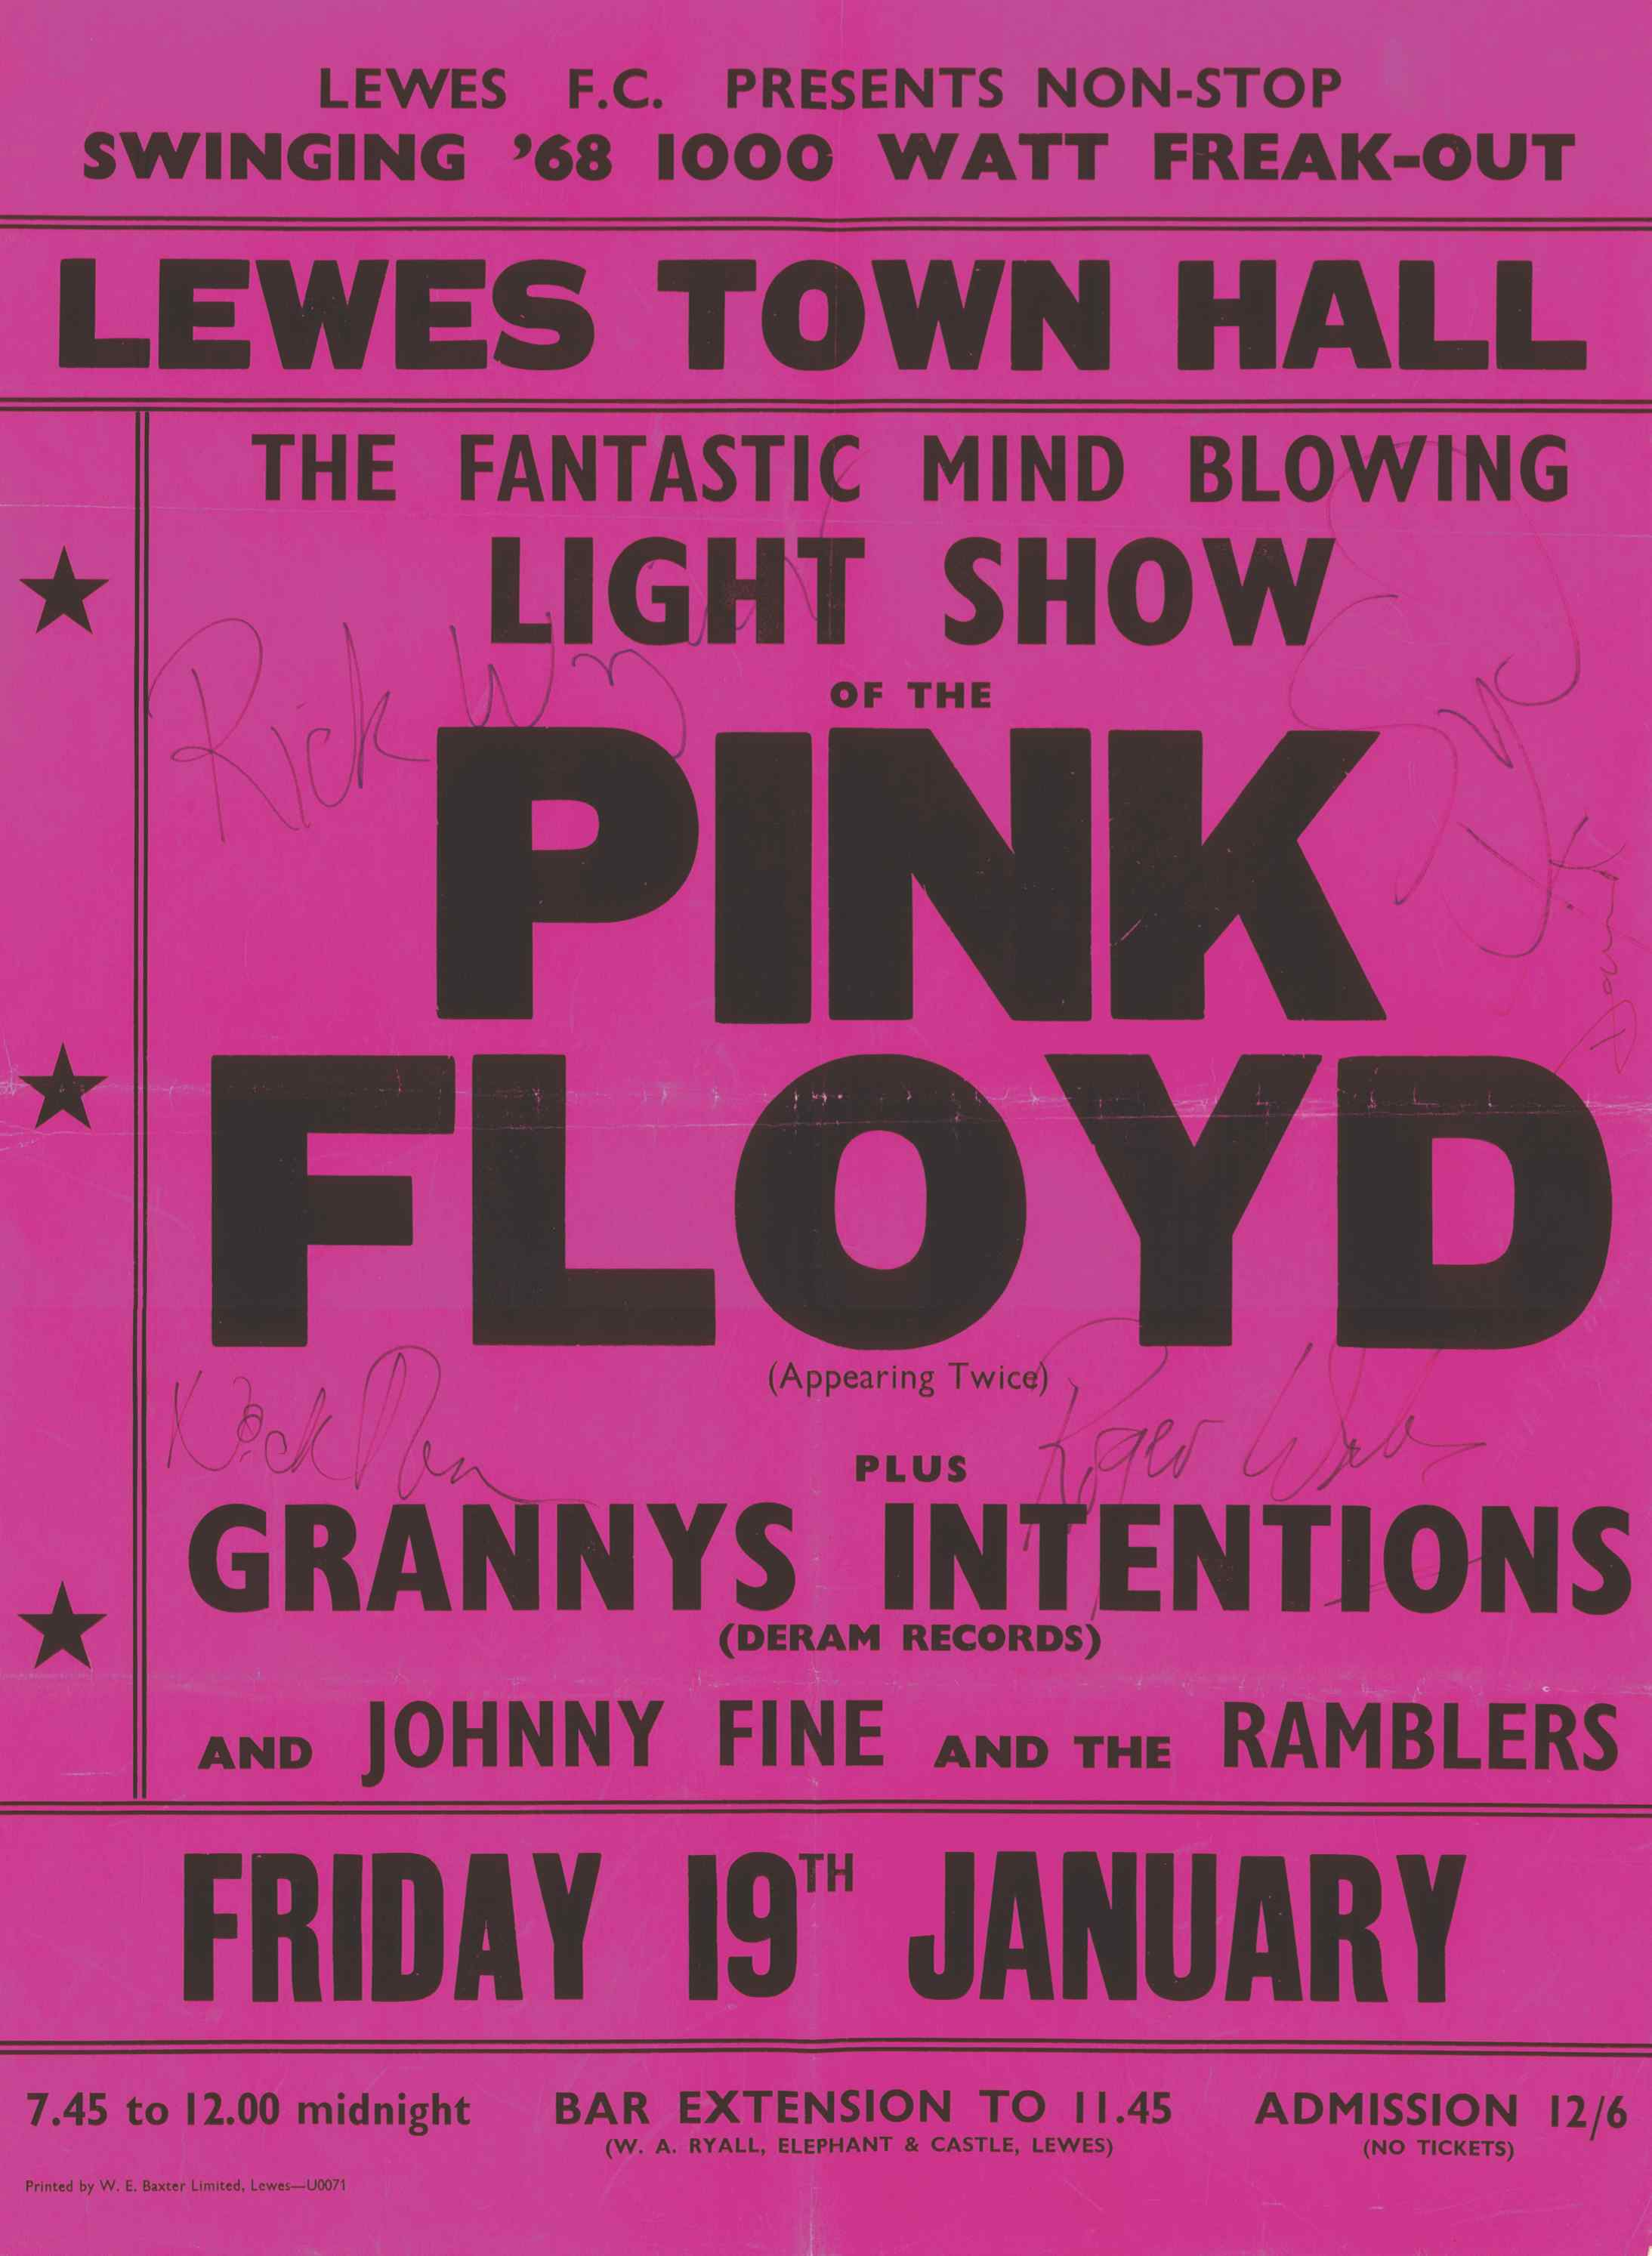 Original 1968 poster for Pink Floyd's gig at Lewes Town Hall